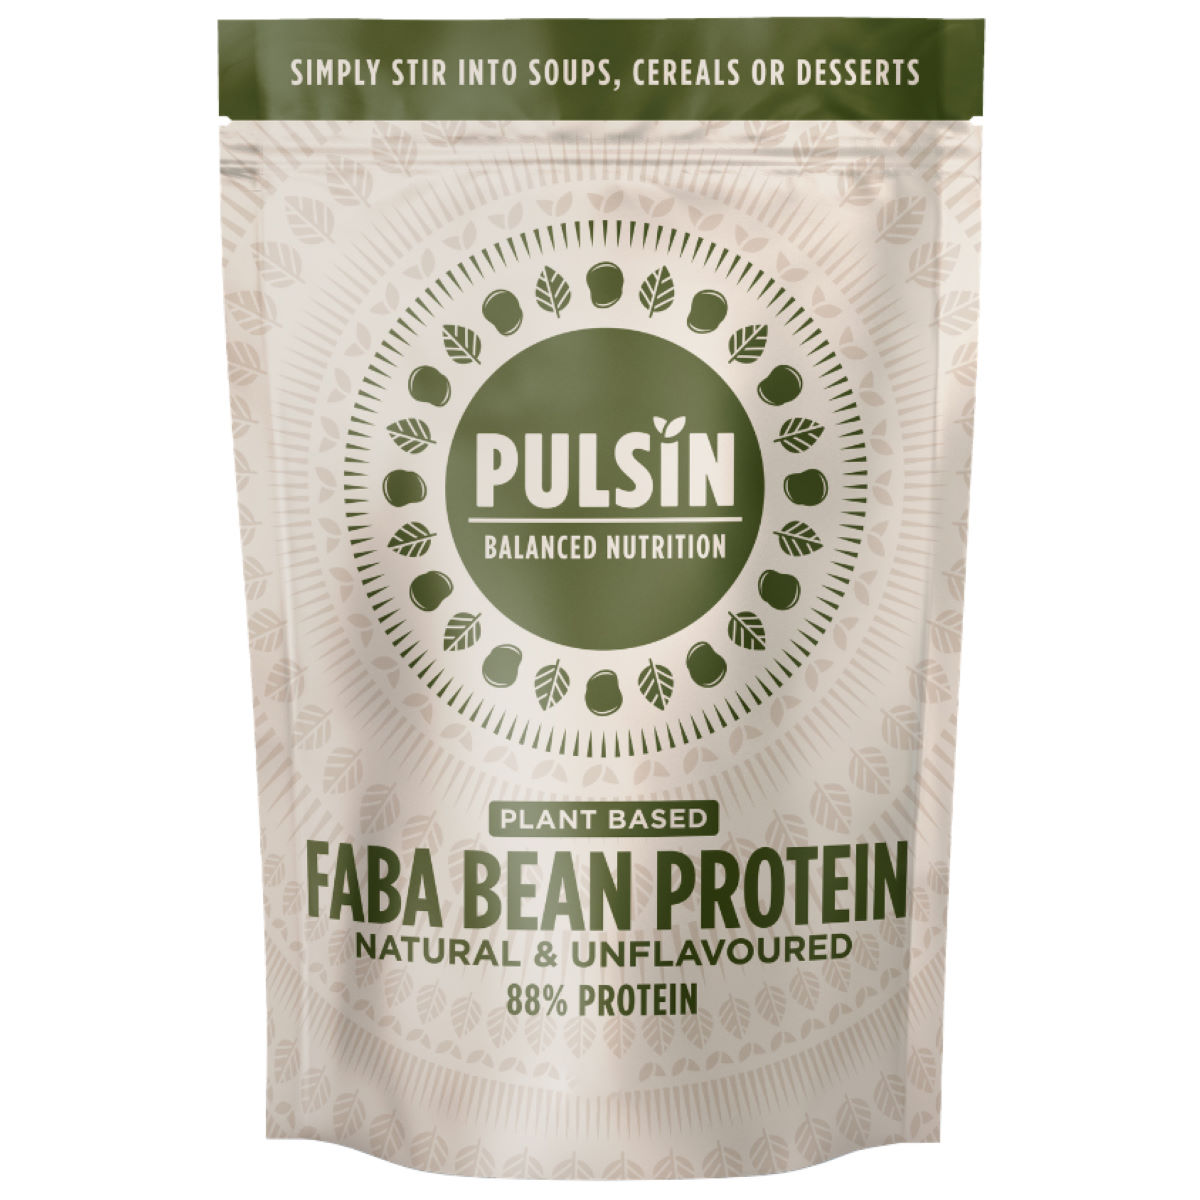 Pulsin Faba Bean Protein Powder (1kg) - 1 Kg Natural  Powdered Drinks